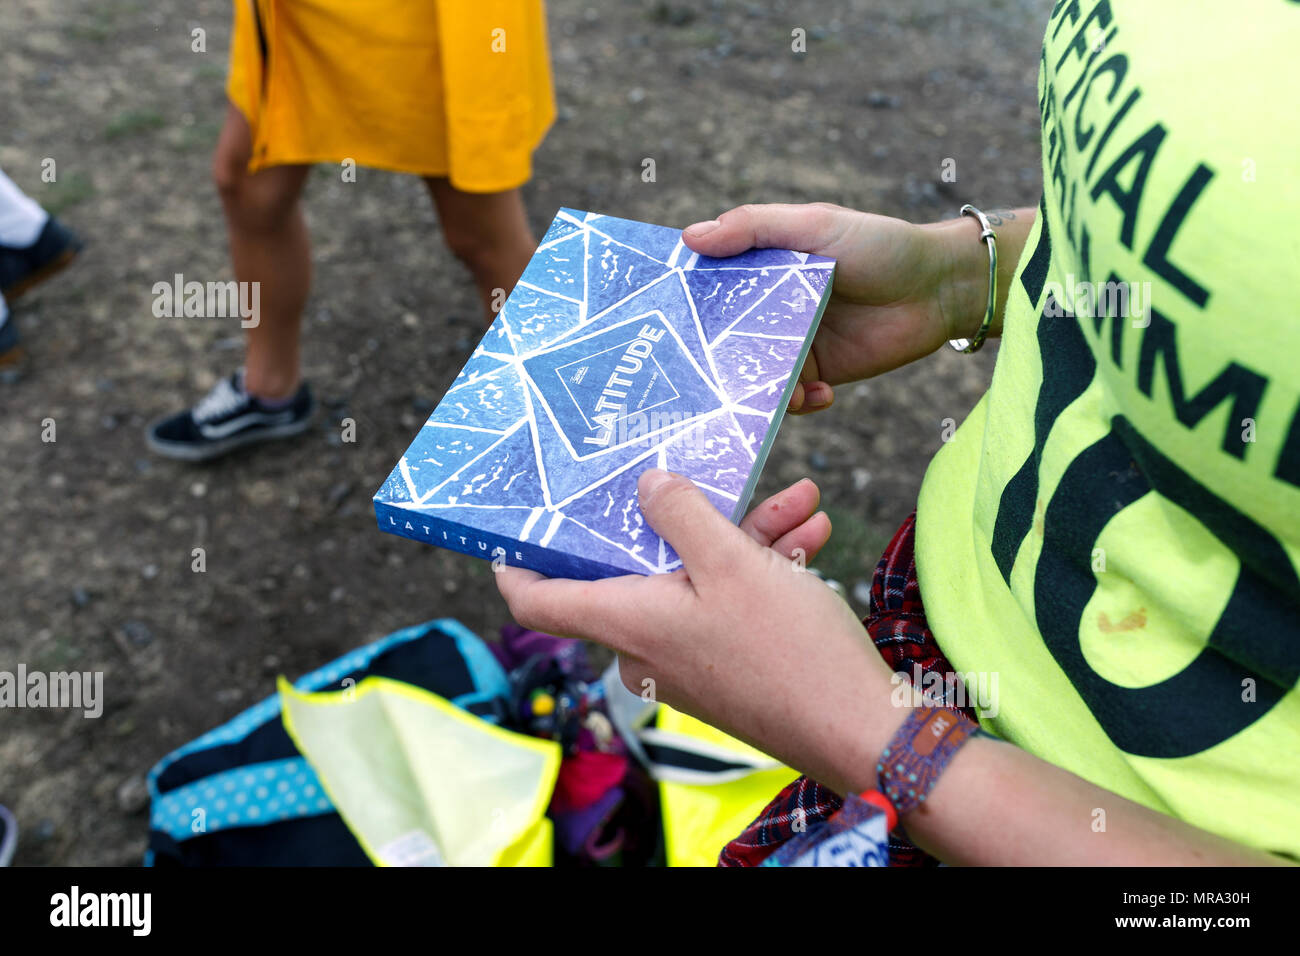 A programme seller holding a programme at Latitude Festival 2017. - Stock Image